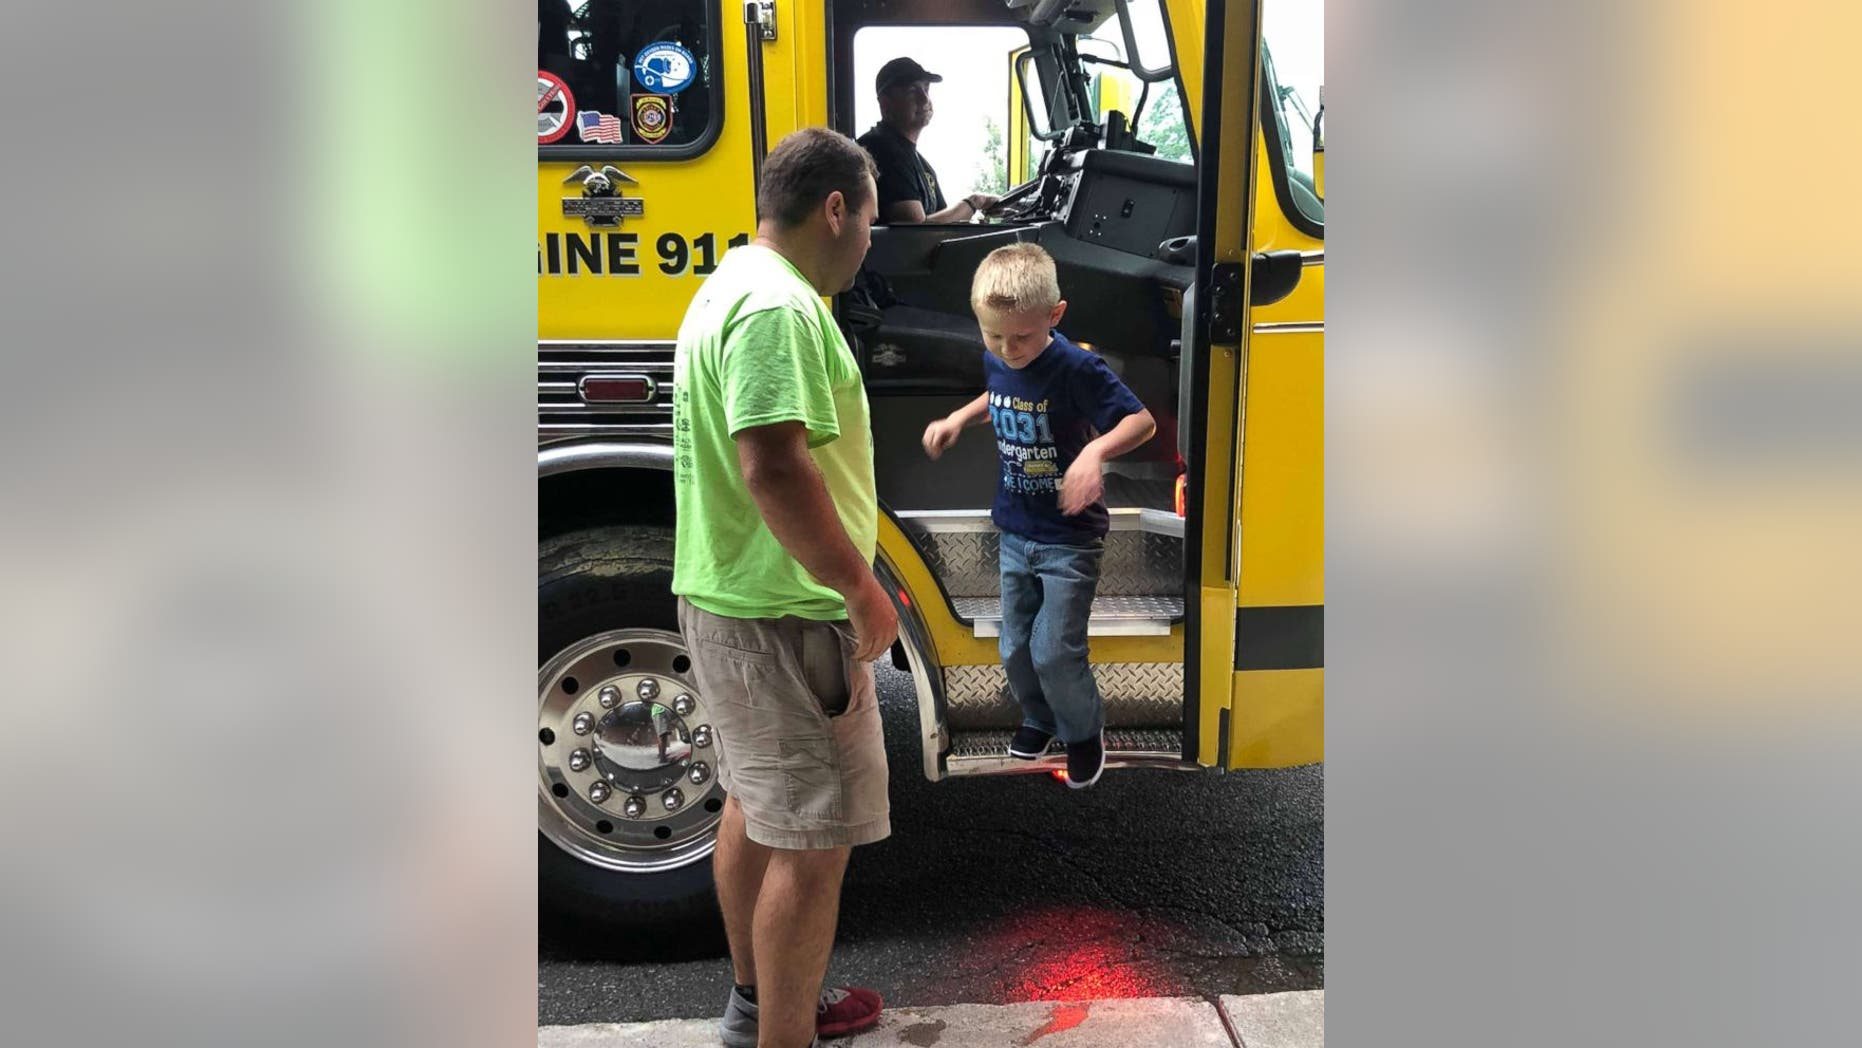 Five-year-old Cooper Brooks, whose firefighter father recently died, got to ride in a fire truck to his first day of school.